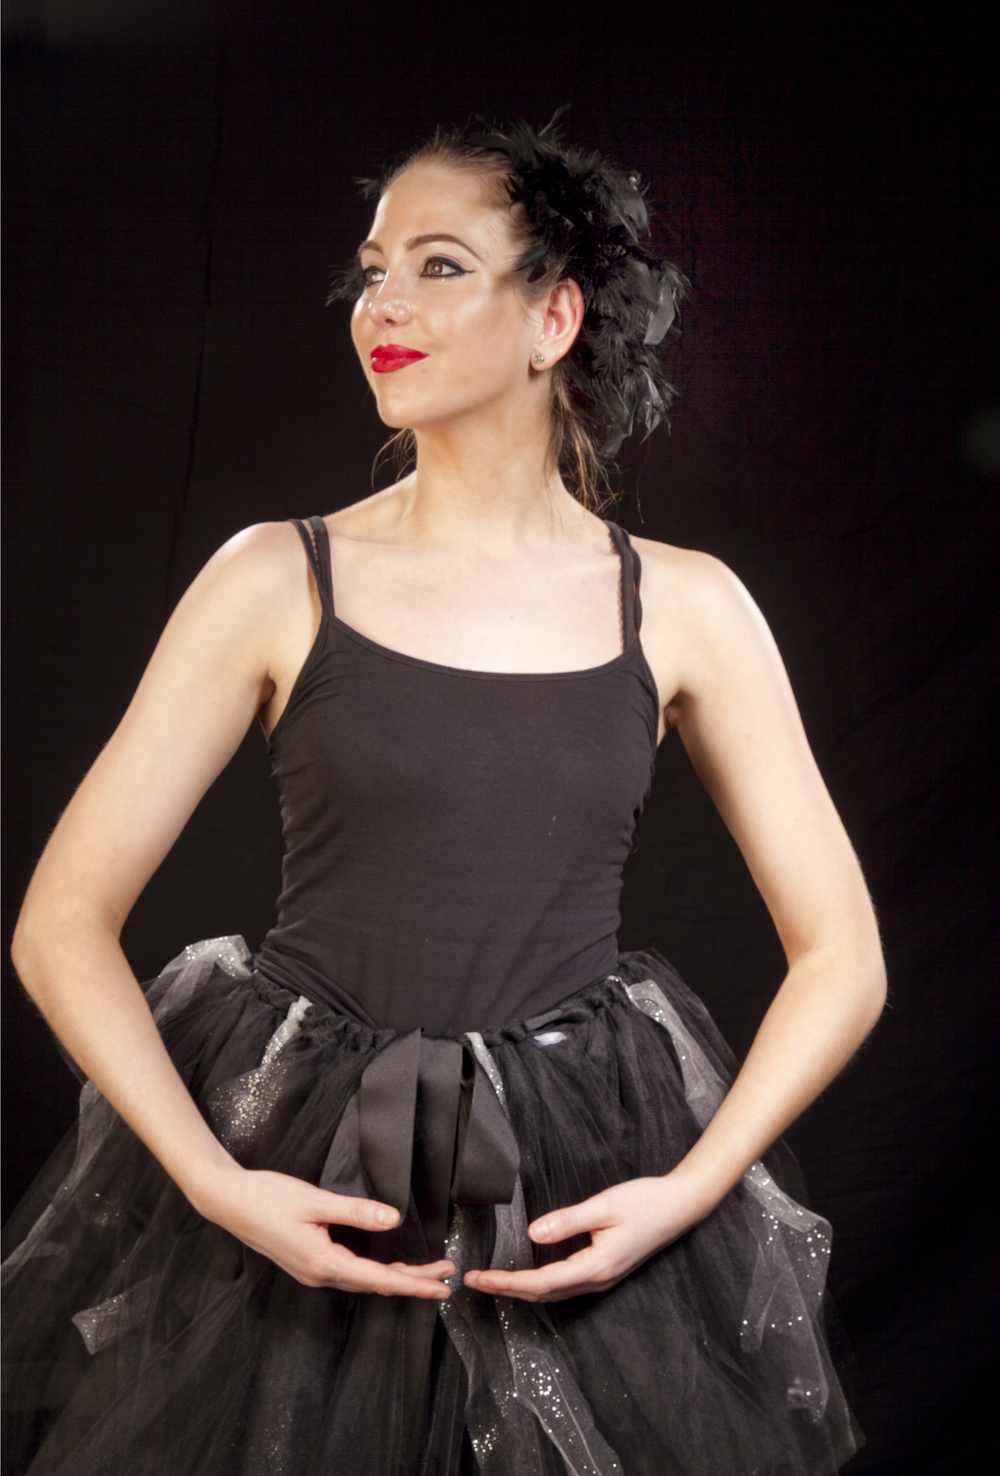 Ballarina in black tutuIMG_4384.jpg